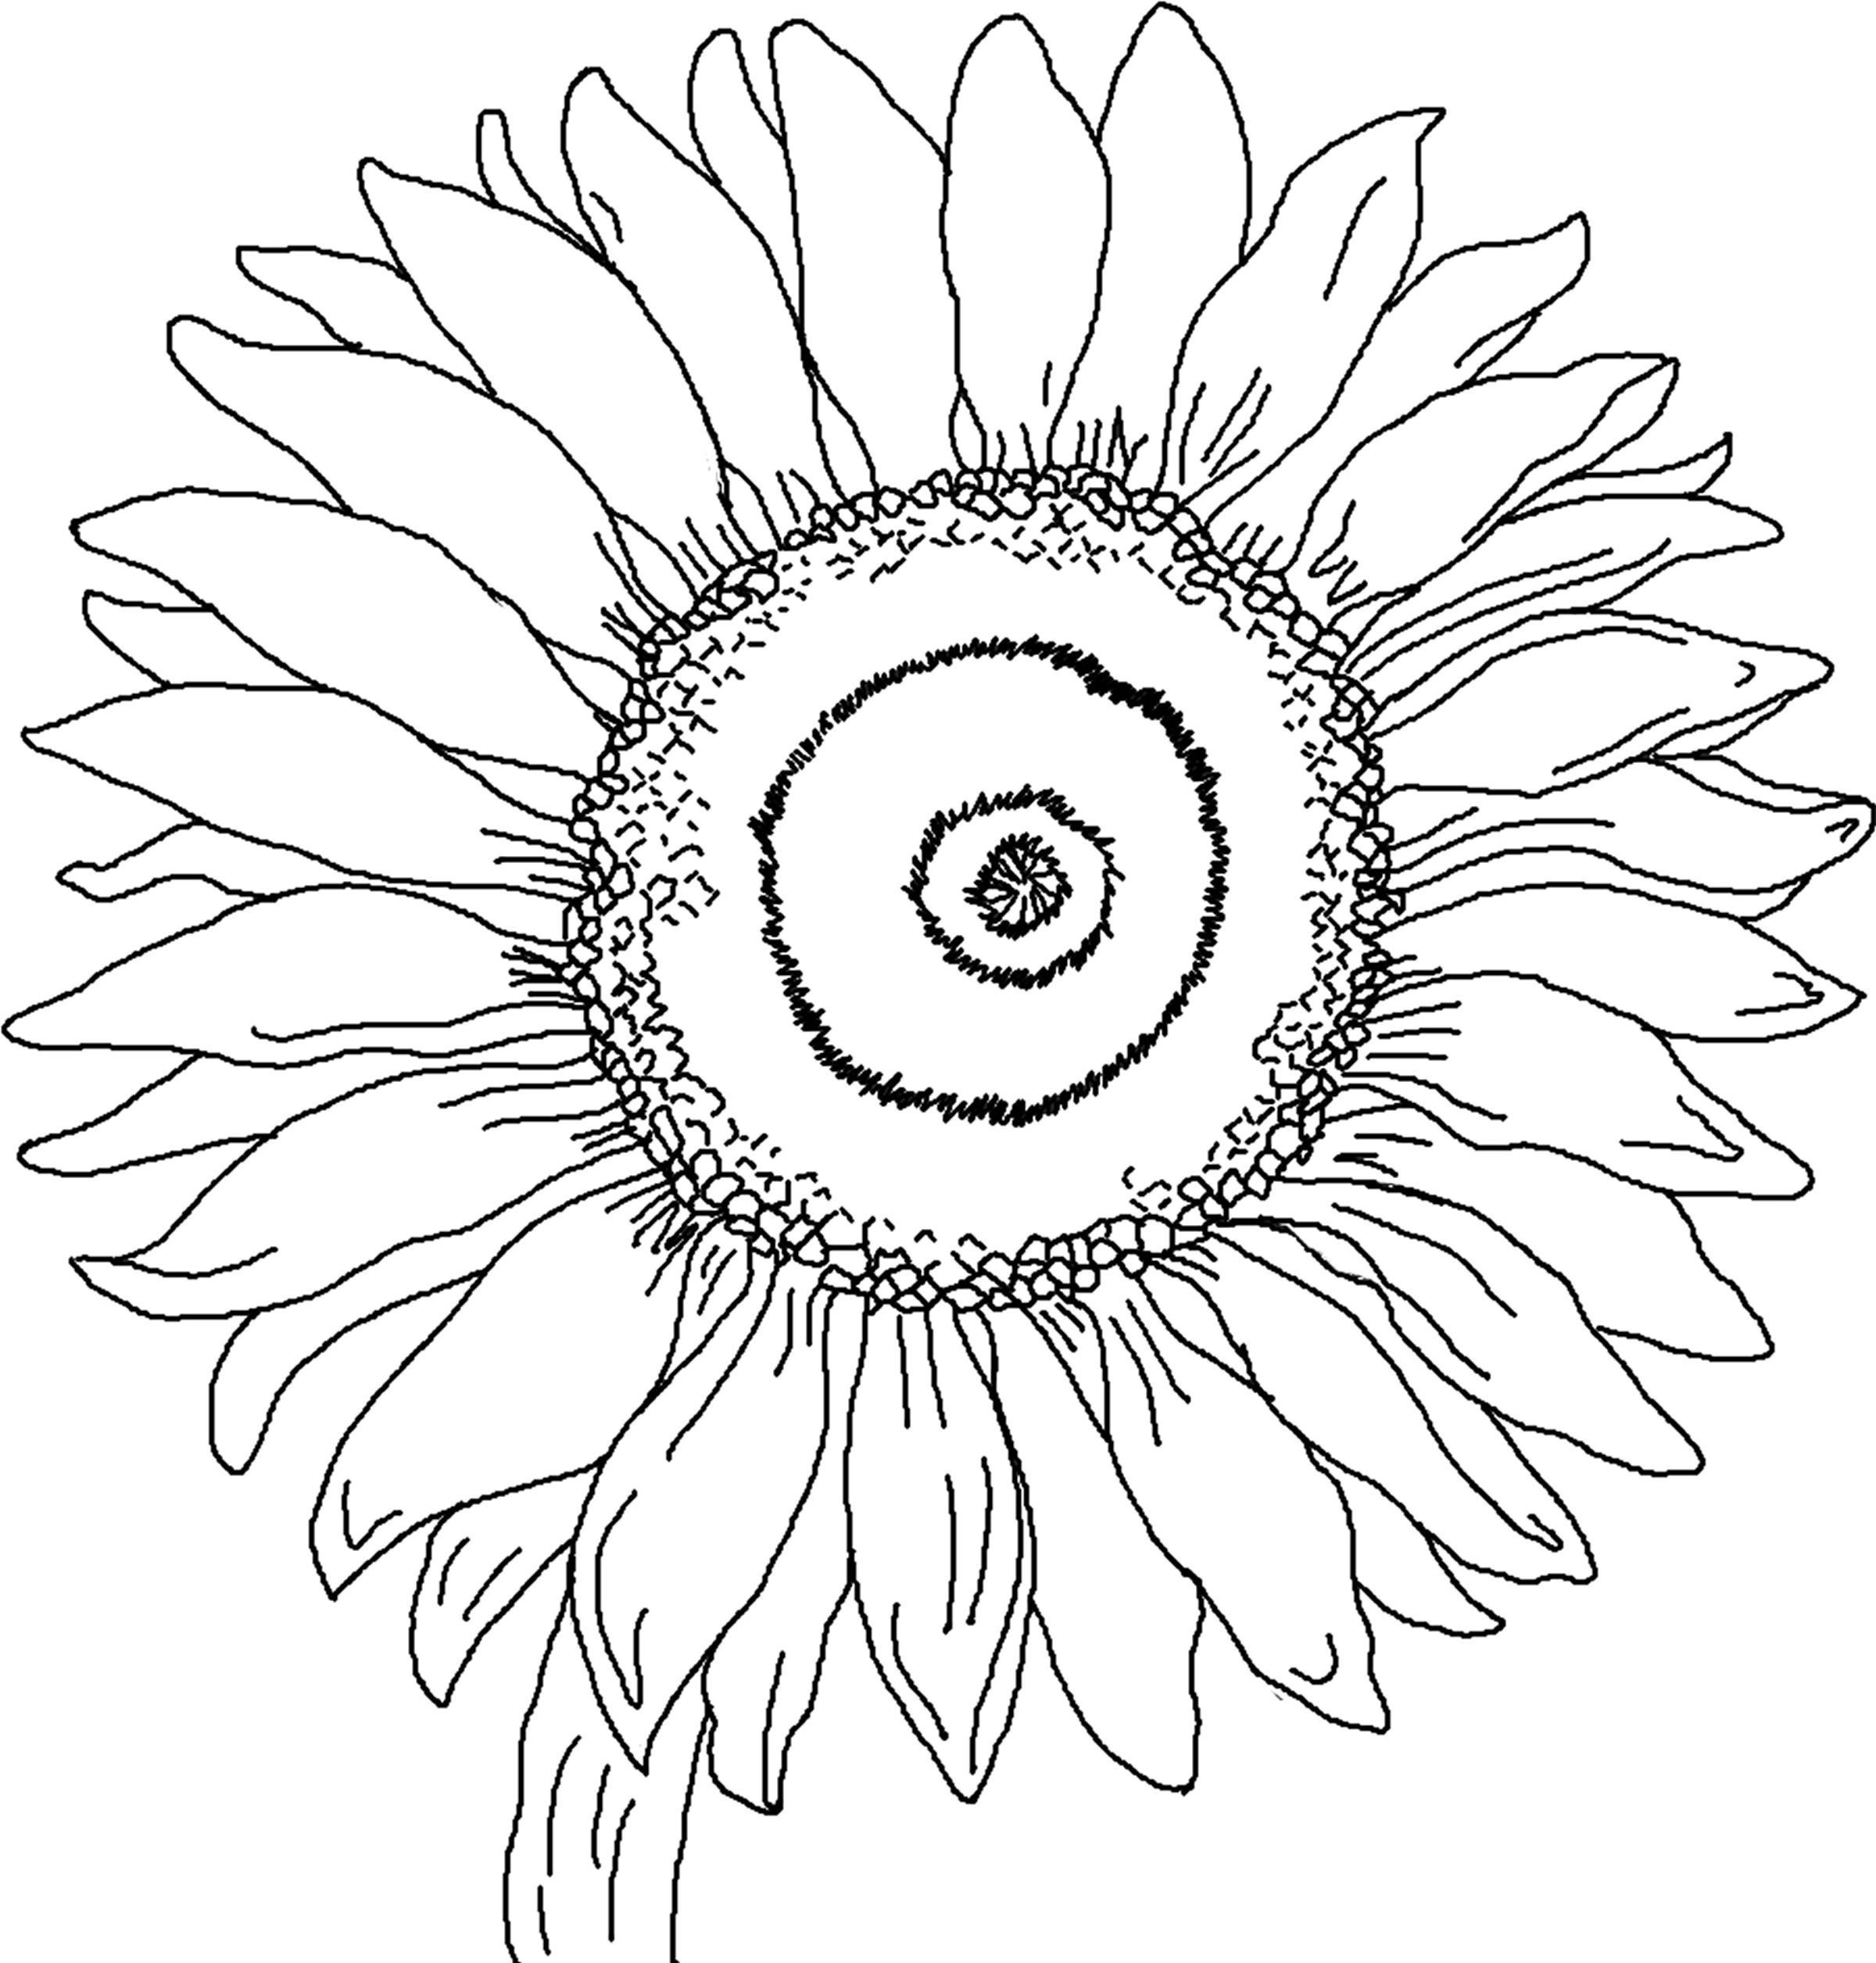 Free Printable Sunflower Coloring Pages For Kids   Auction Art - Free Printable Sunflower Template